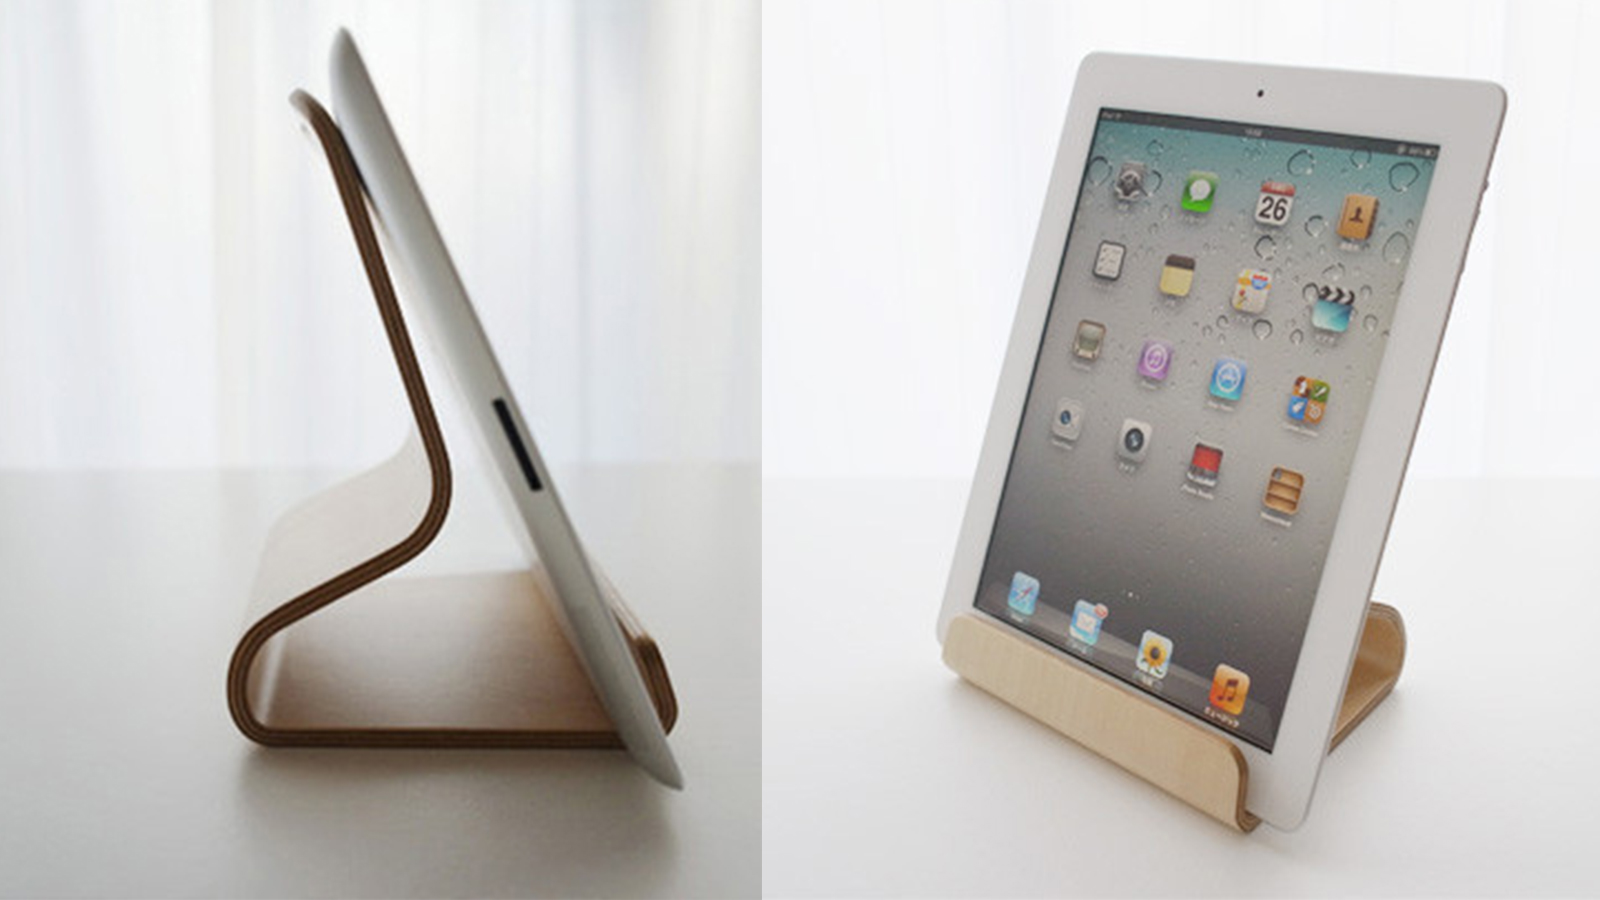 Click here to read It May Be Called the 'Desktop Chair,' but This iPad Stand Would Look Great in a Kitchen